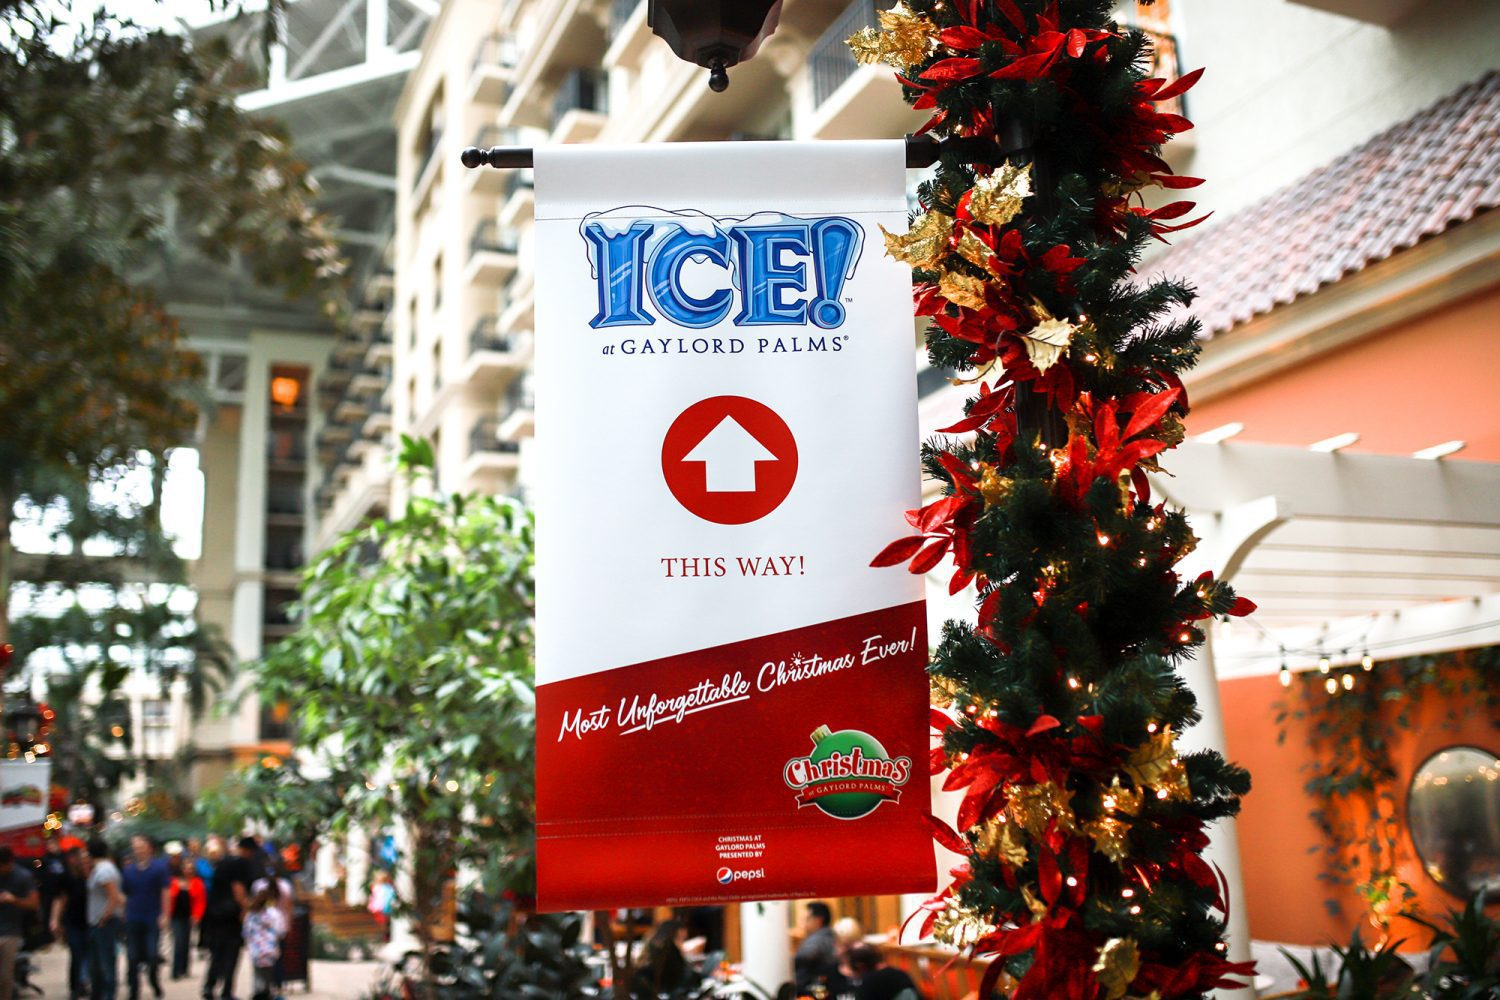 ICE! Sign inside of Gaylord Palms